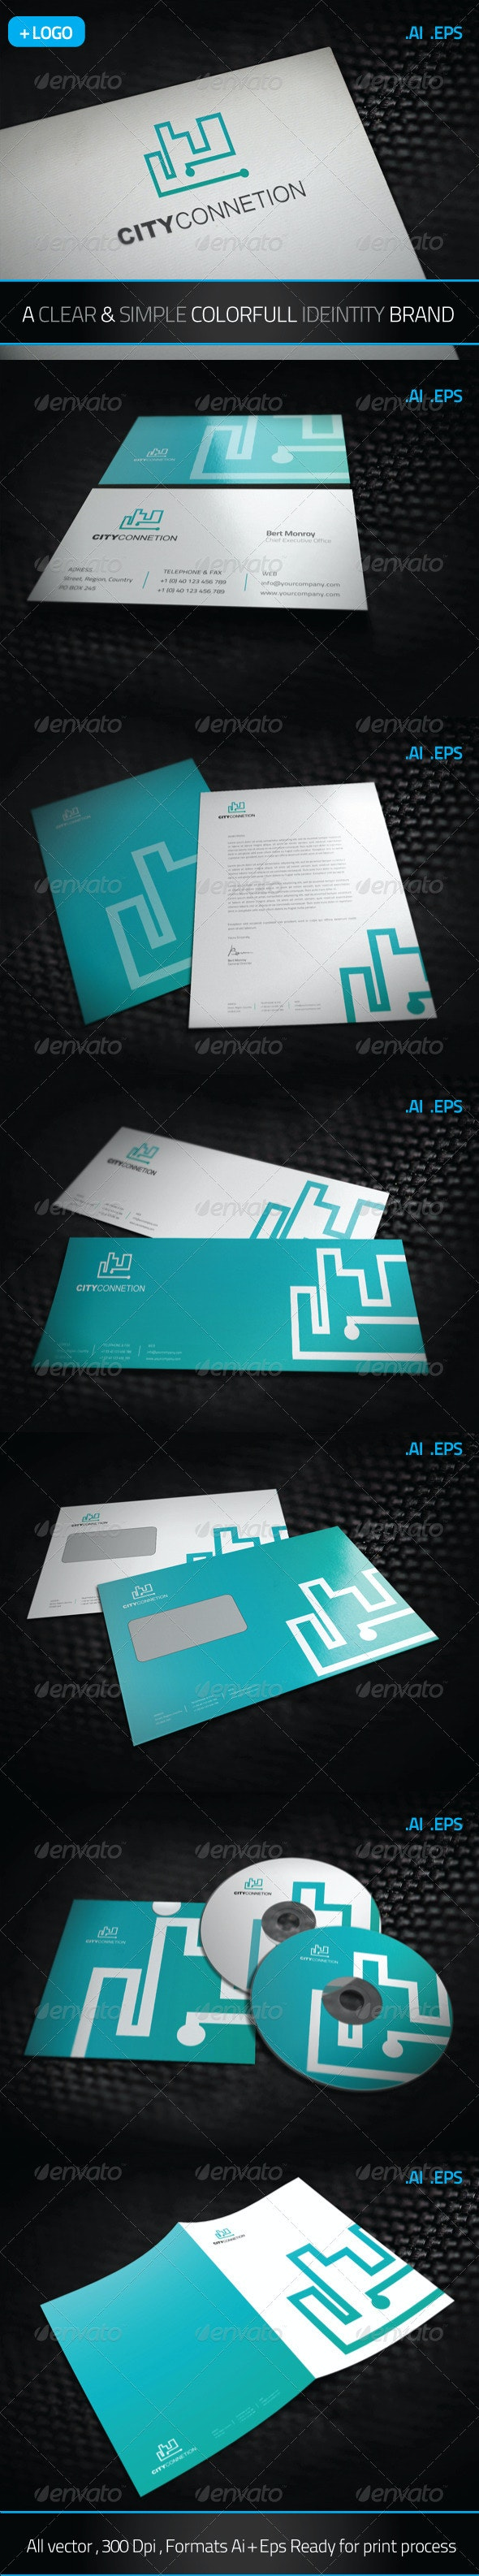 City Connection - Stationery Print Templates